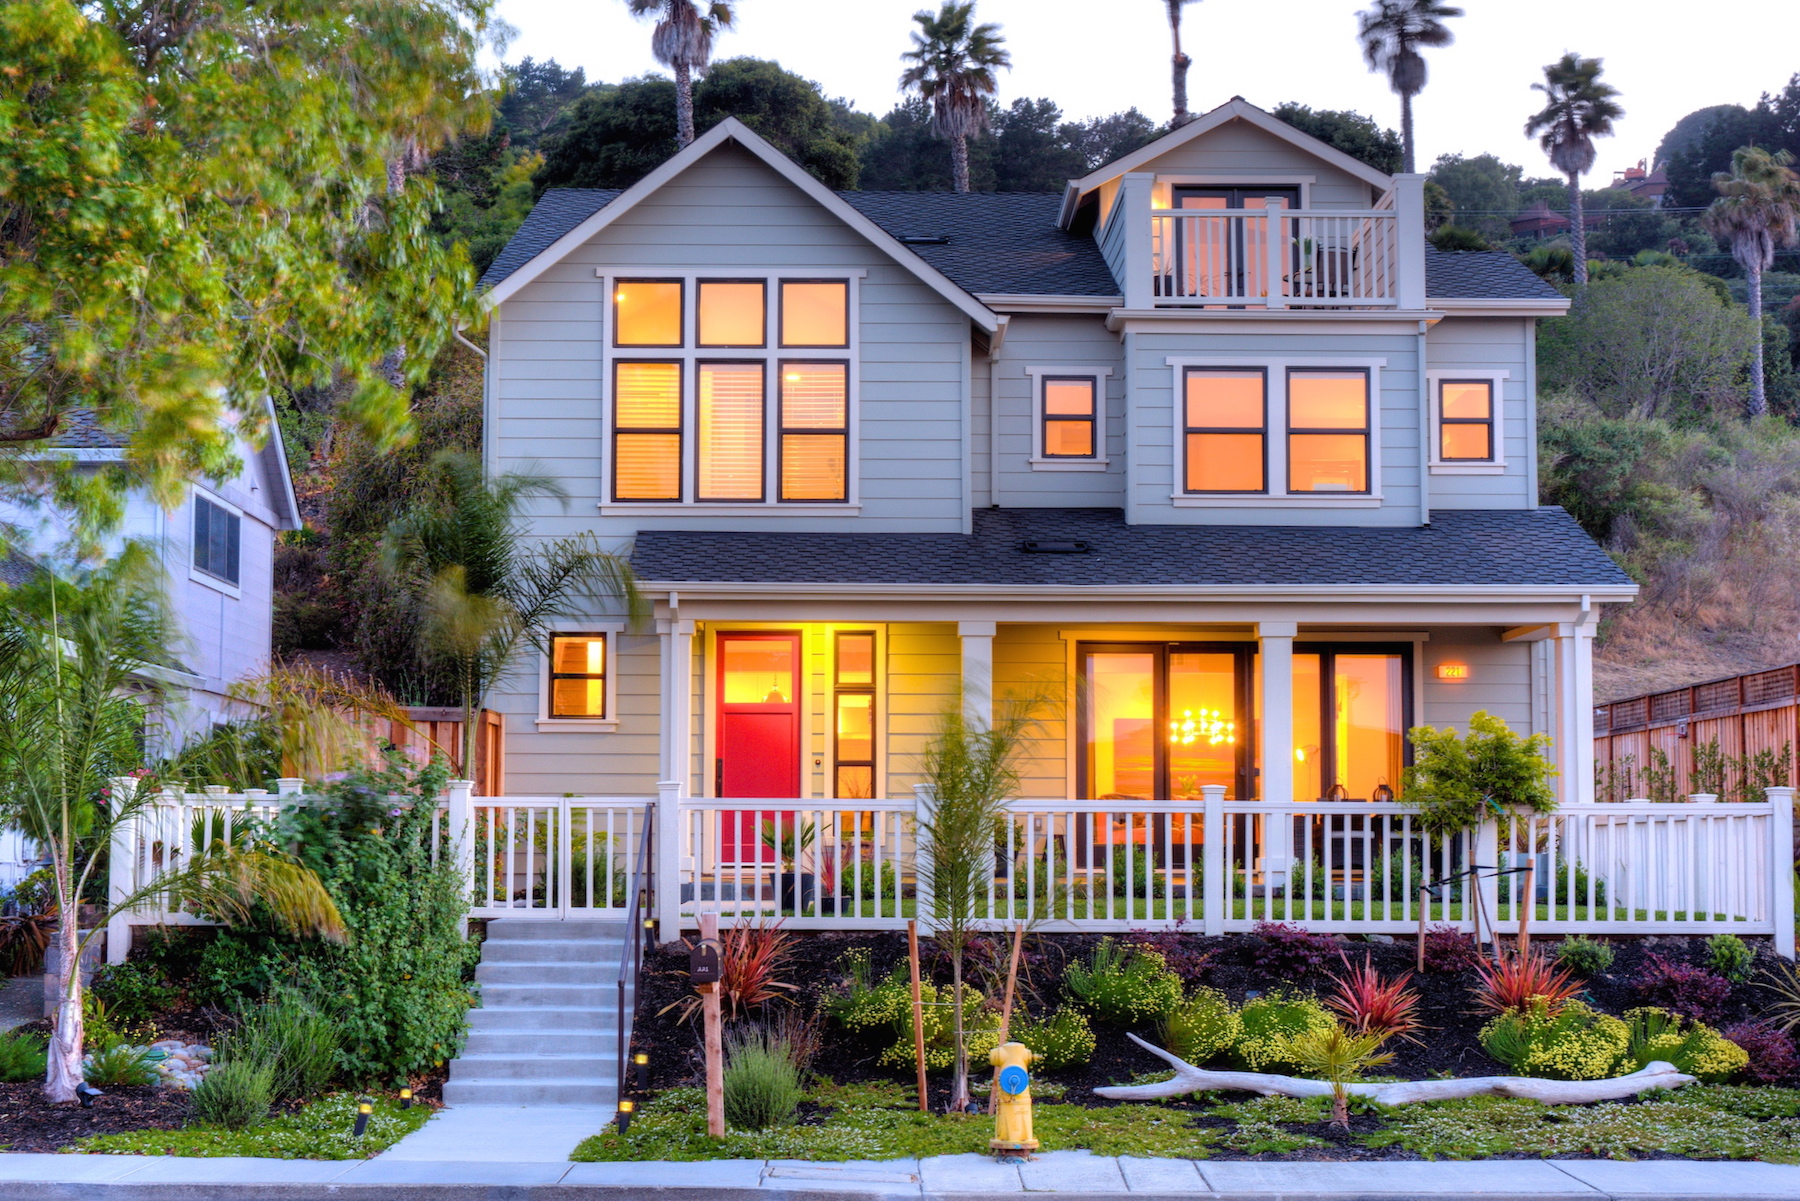 Single Family Home for Sale at Modern Living in Tiburon 221 Trinidad Dr Tiburon, California 94920 United States